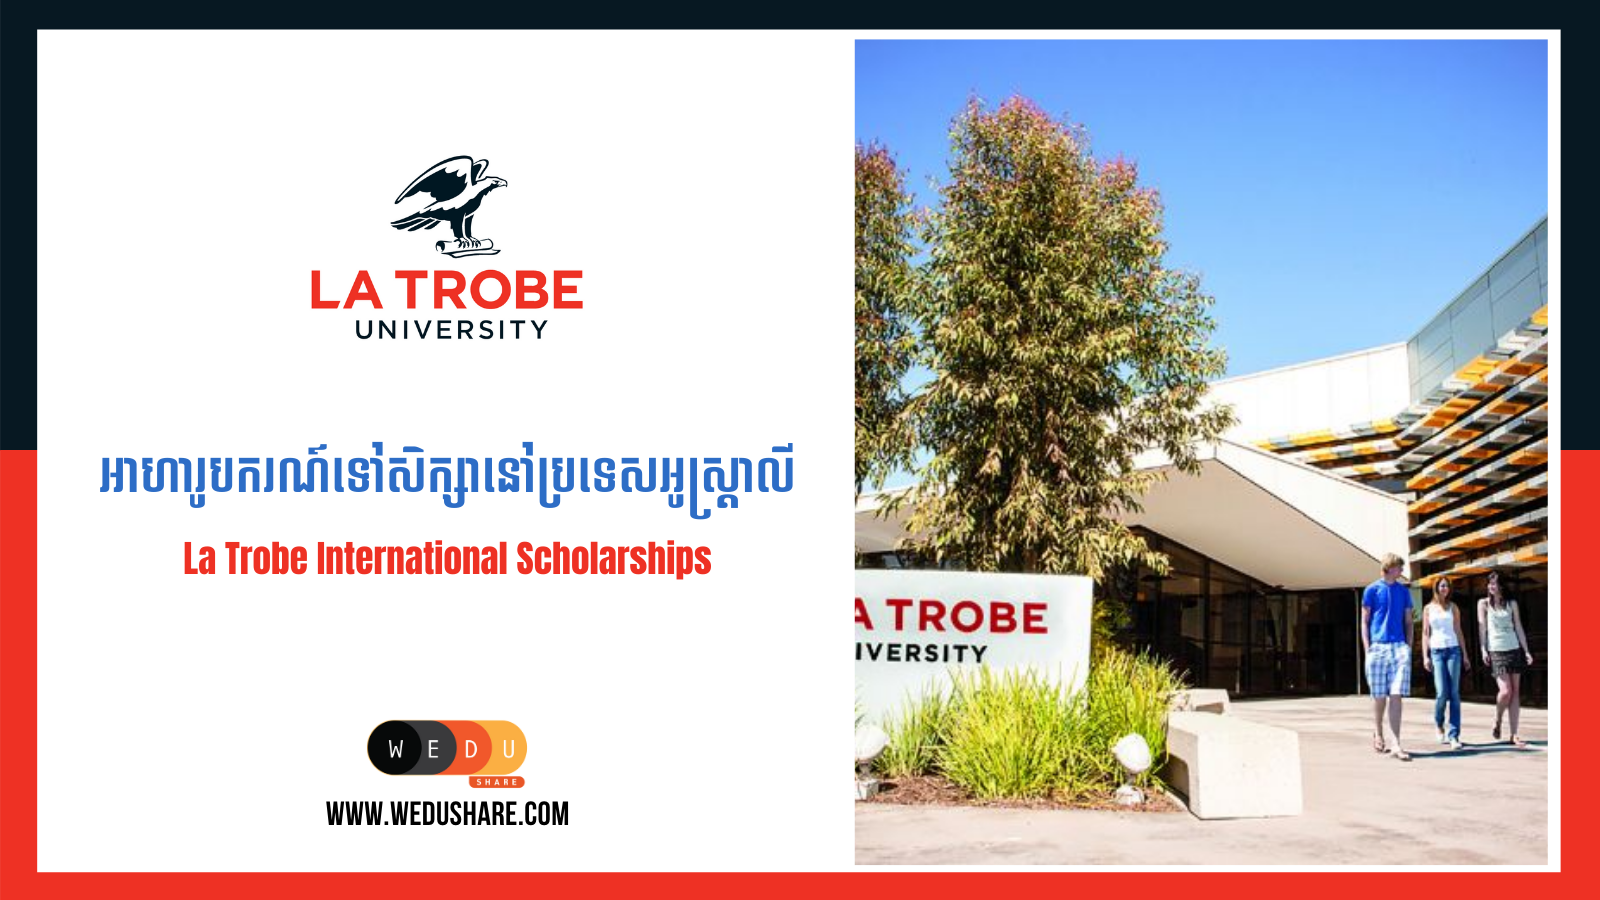 La Trobe International Scholarships